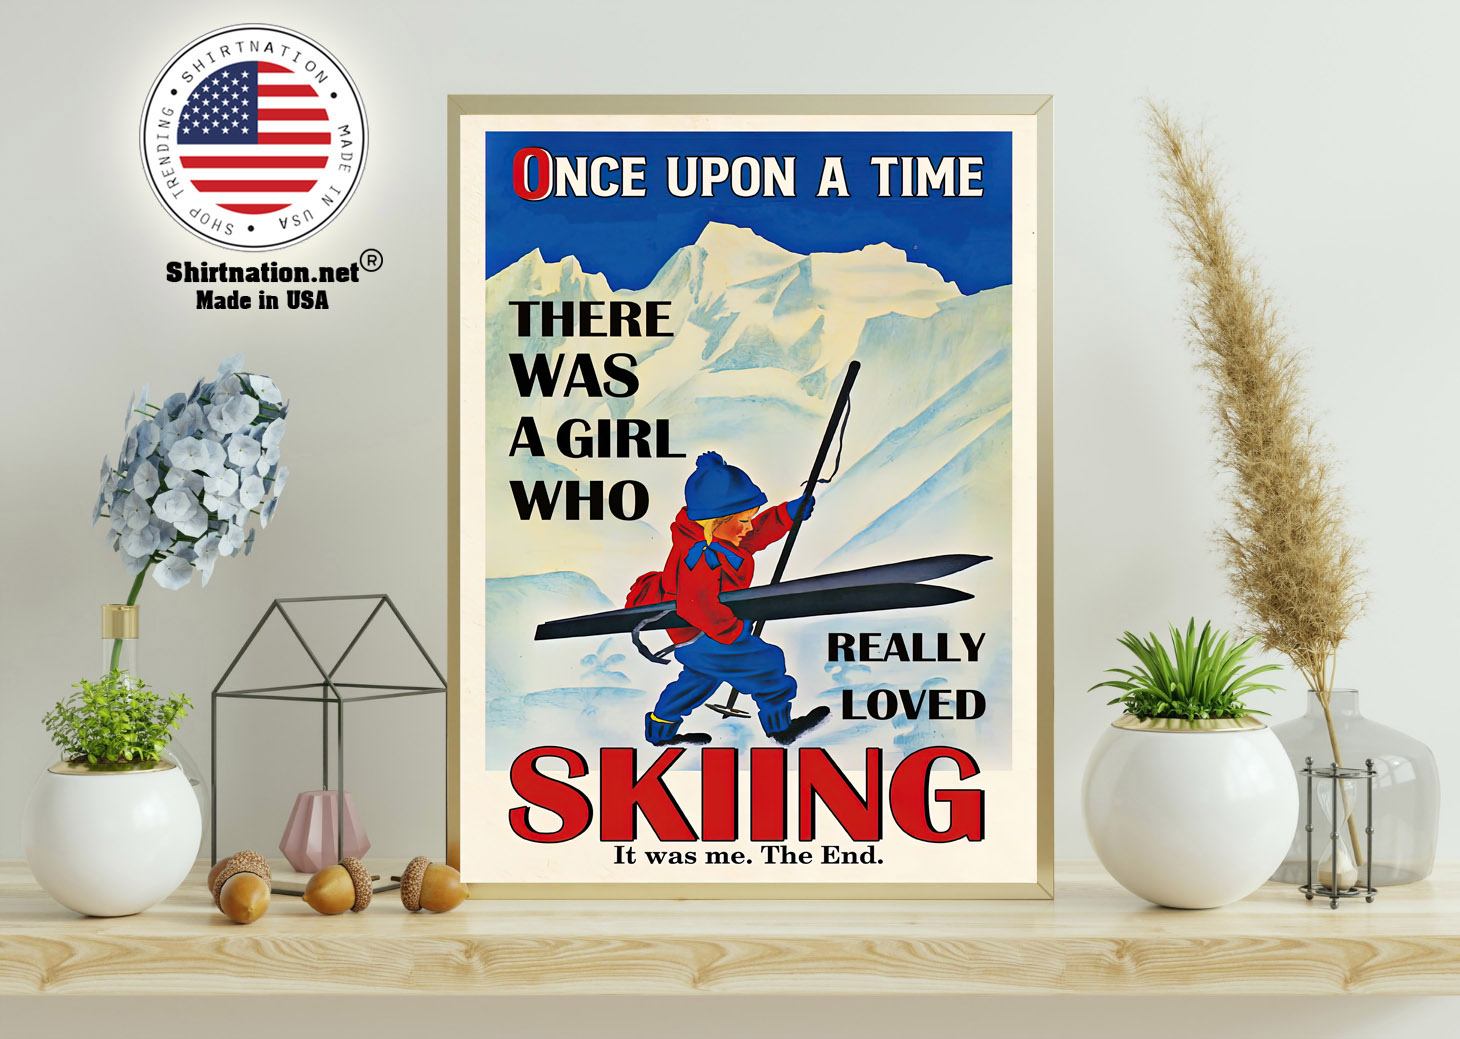 Once upon a time there was a girl who really loved skiing poster 11